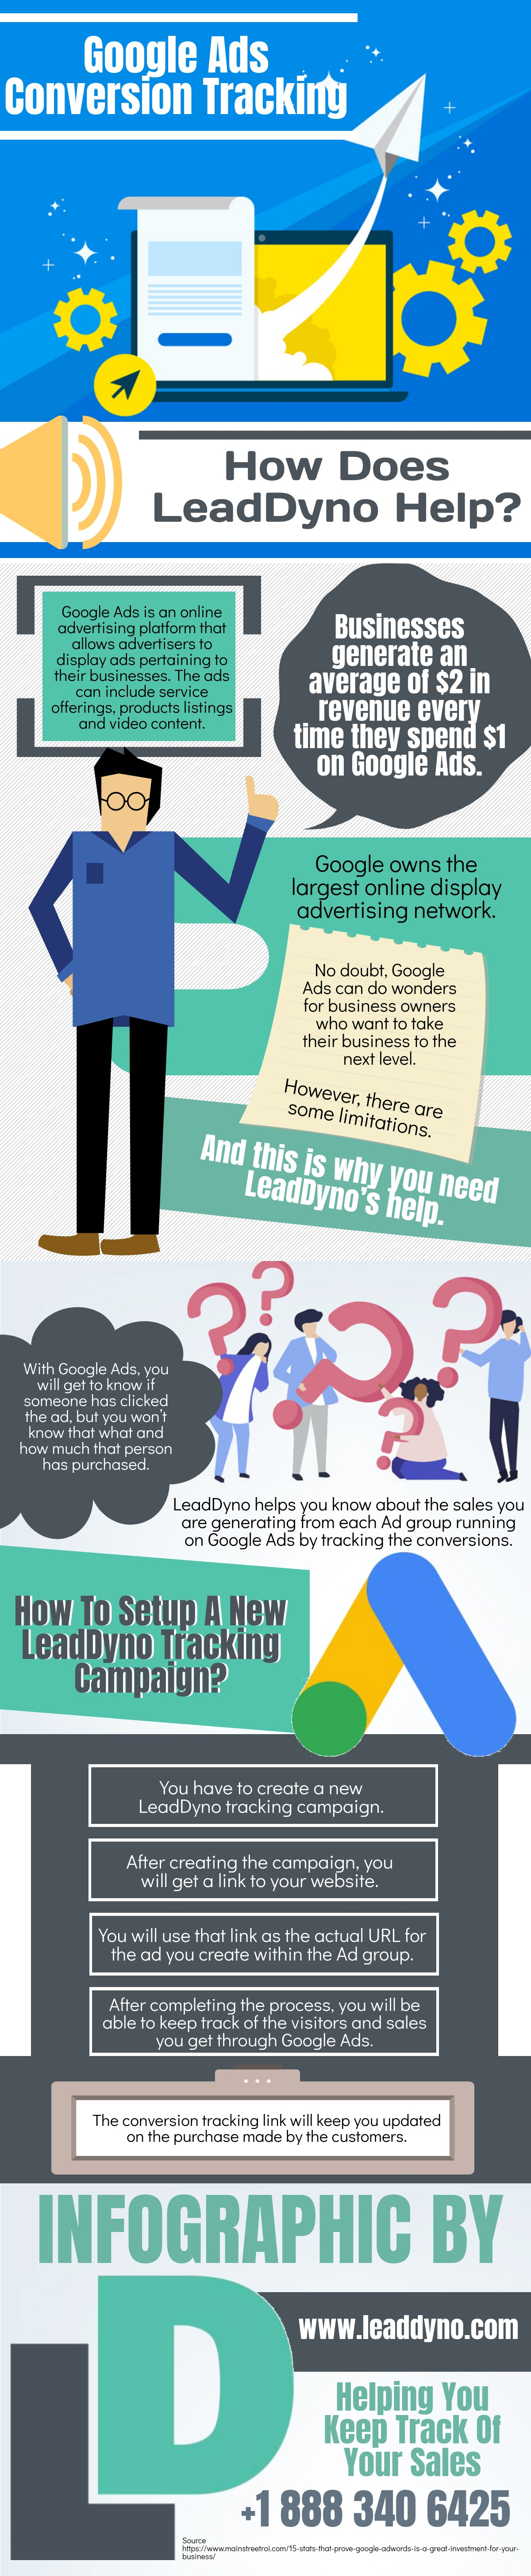 Google Ads Conversion Tracking Infographic